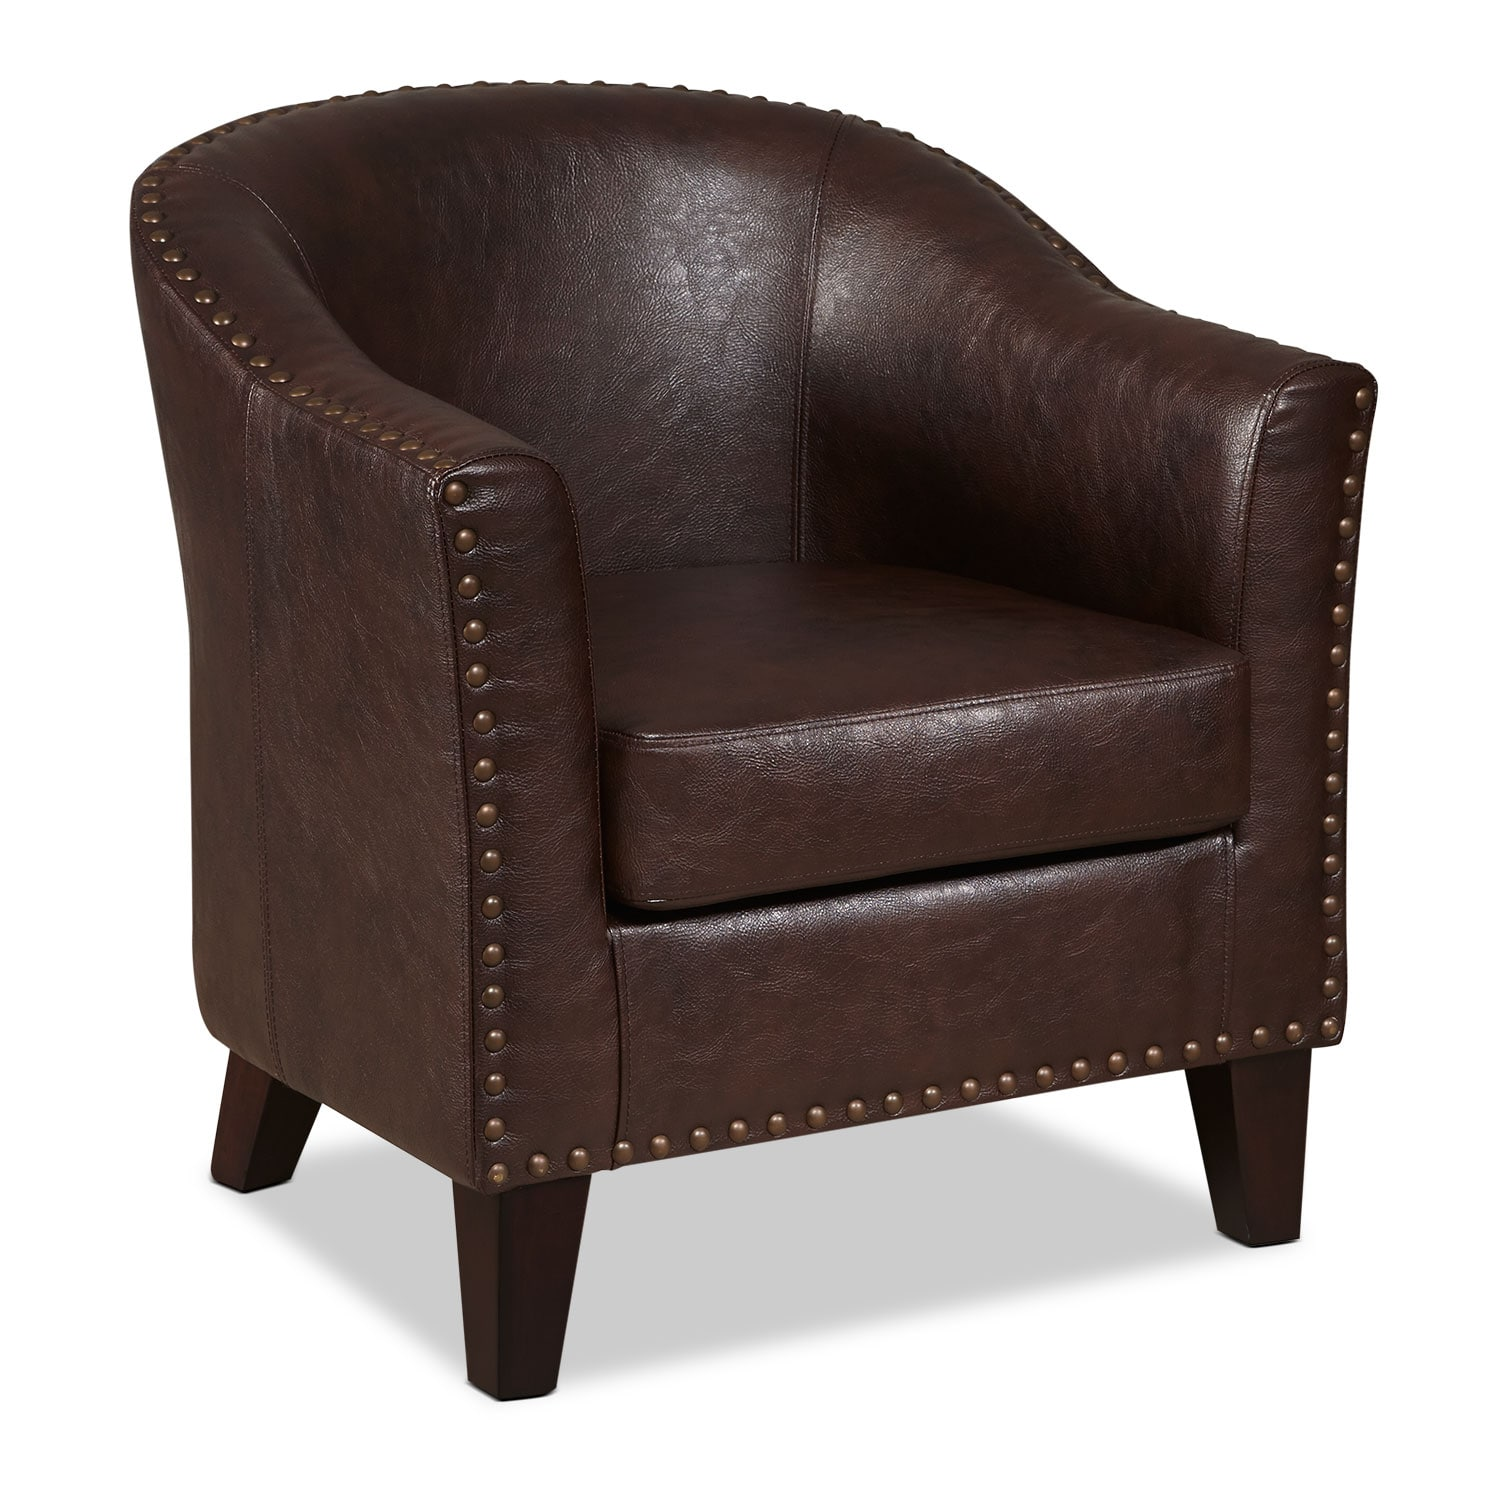 Living Room Furniture - Brogan Accent Chair